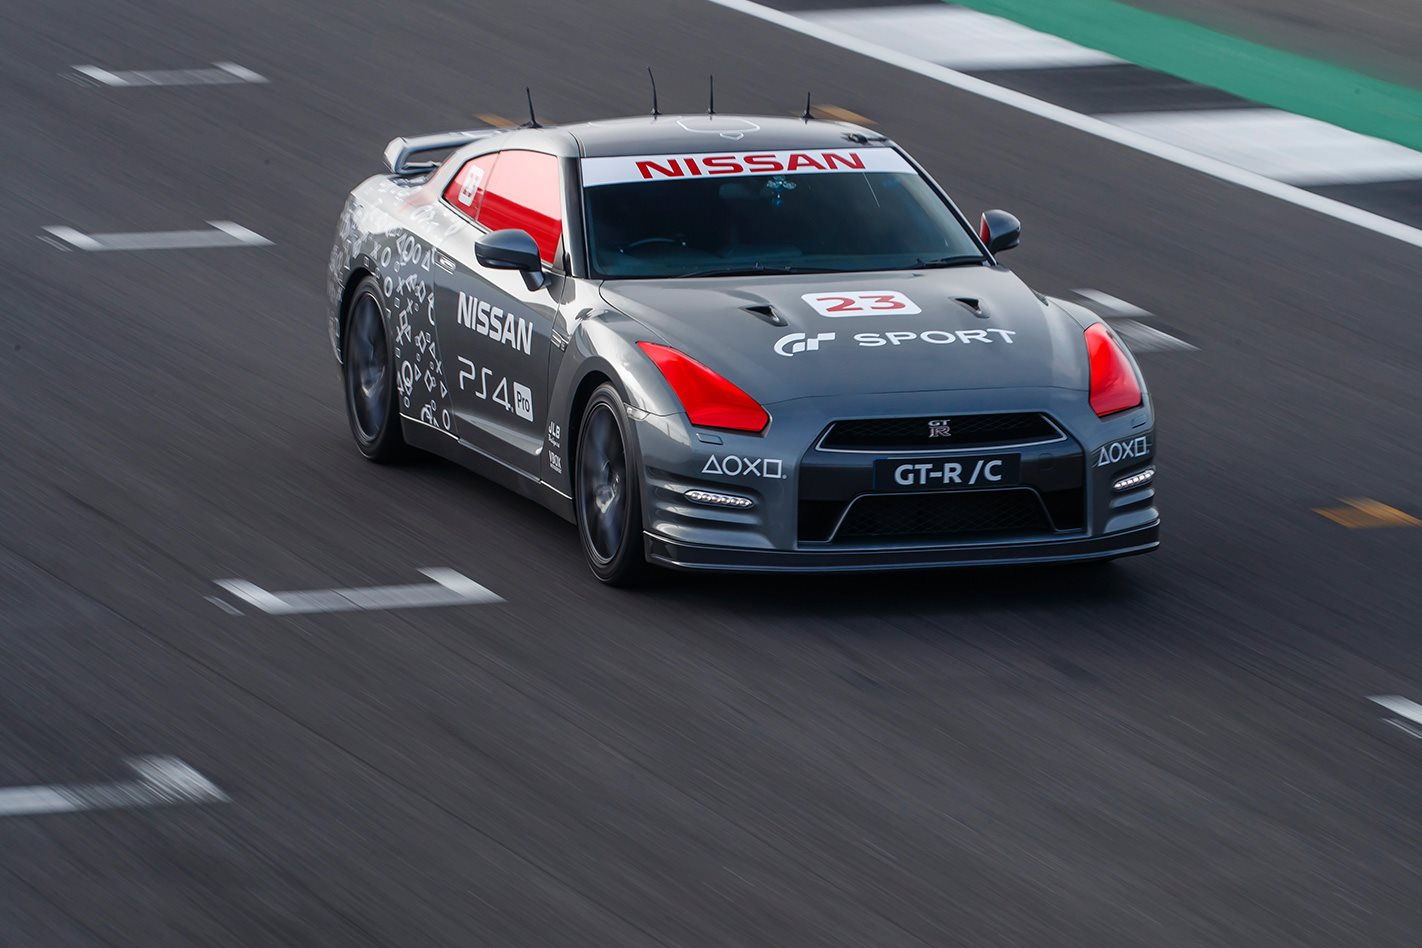 Nissan Raced A GT-R Around A Track At 210KM/H, Using A PS4 Controller